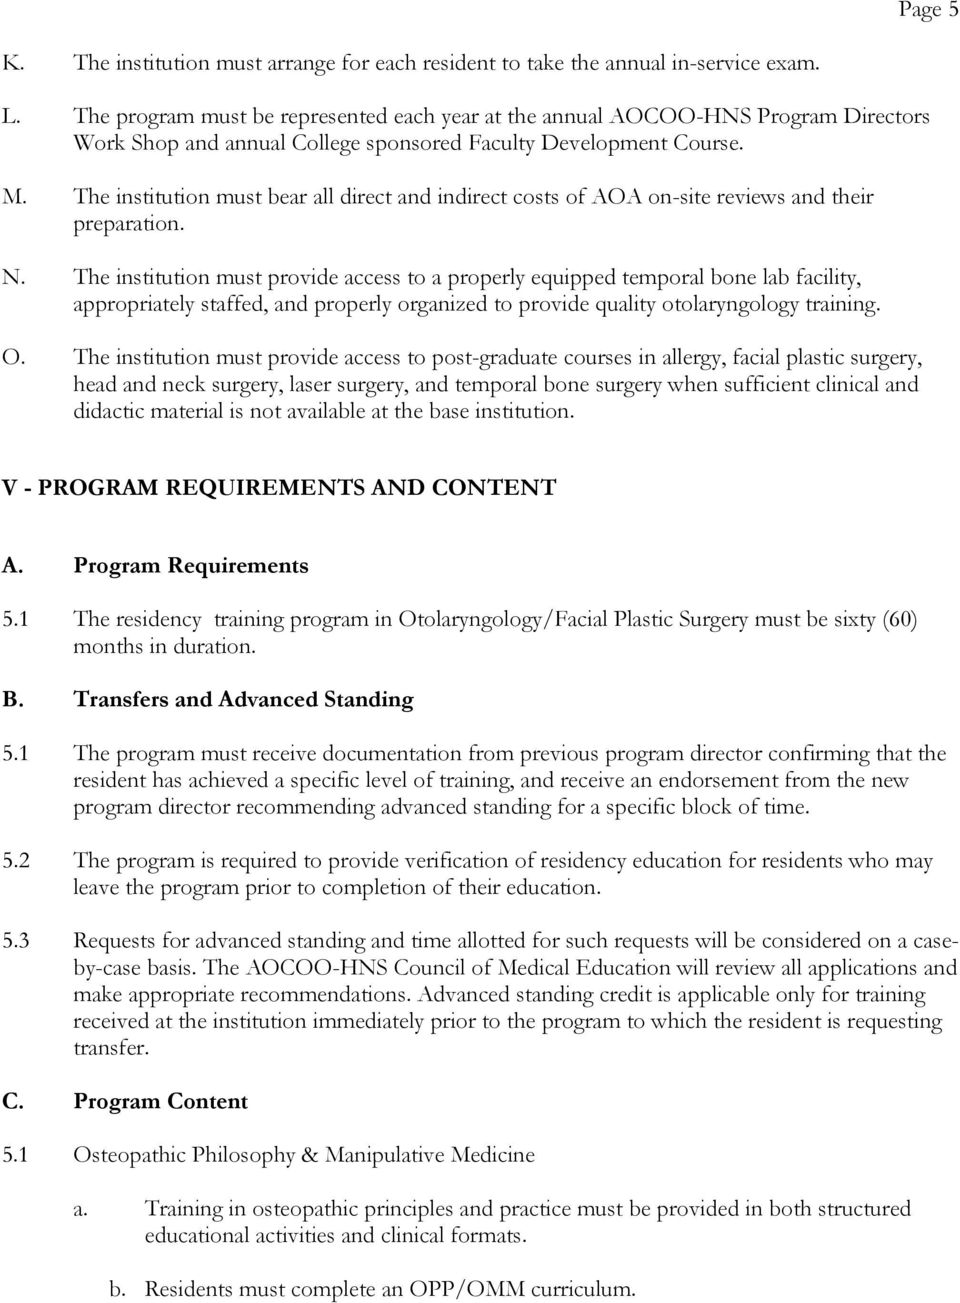 What is the procedure for accessing formal learning programmes